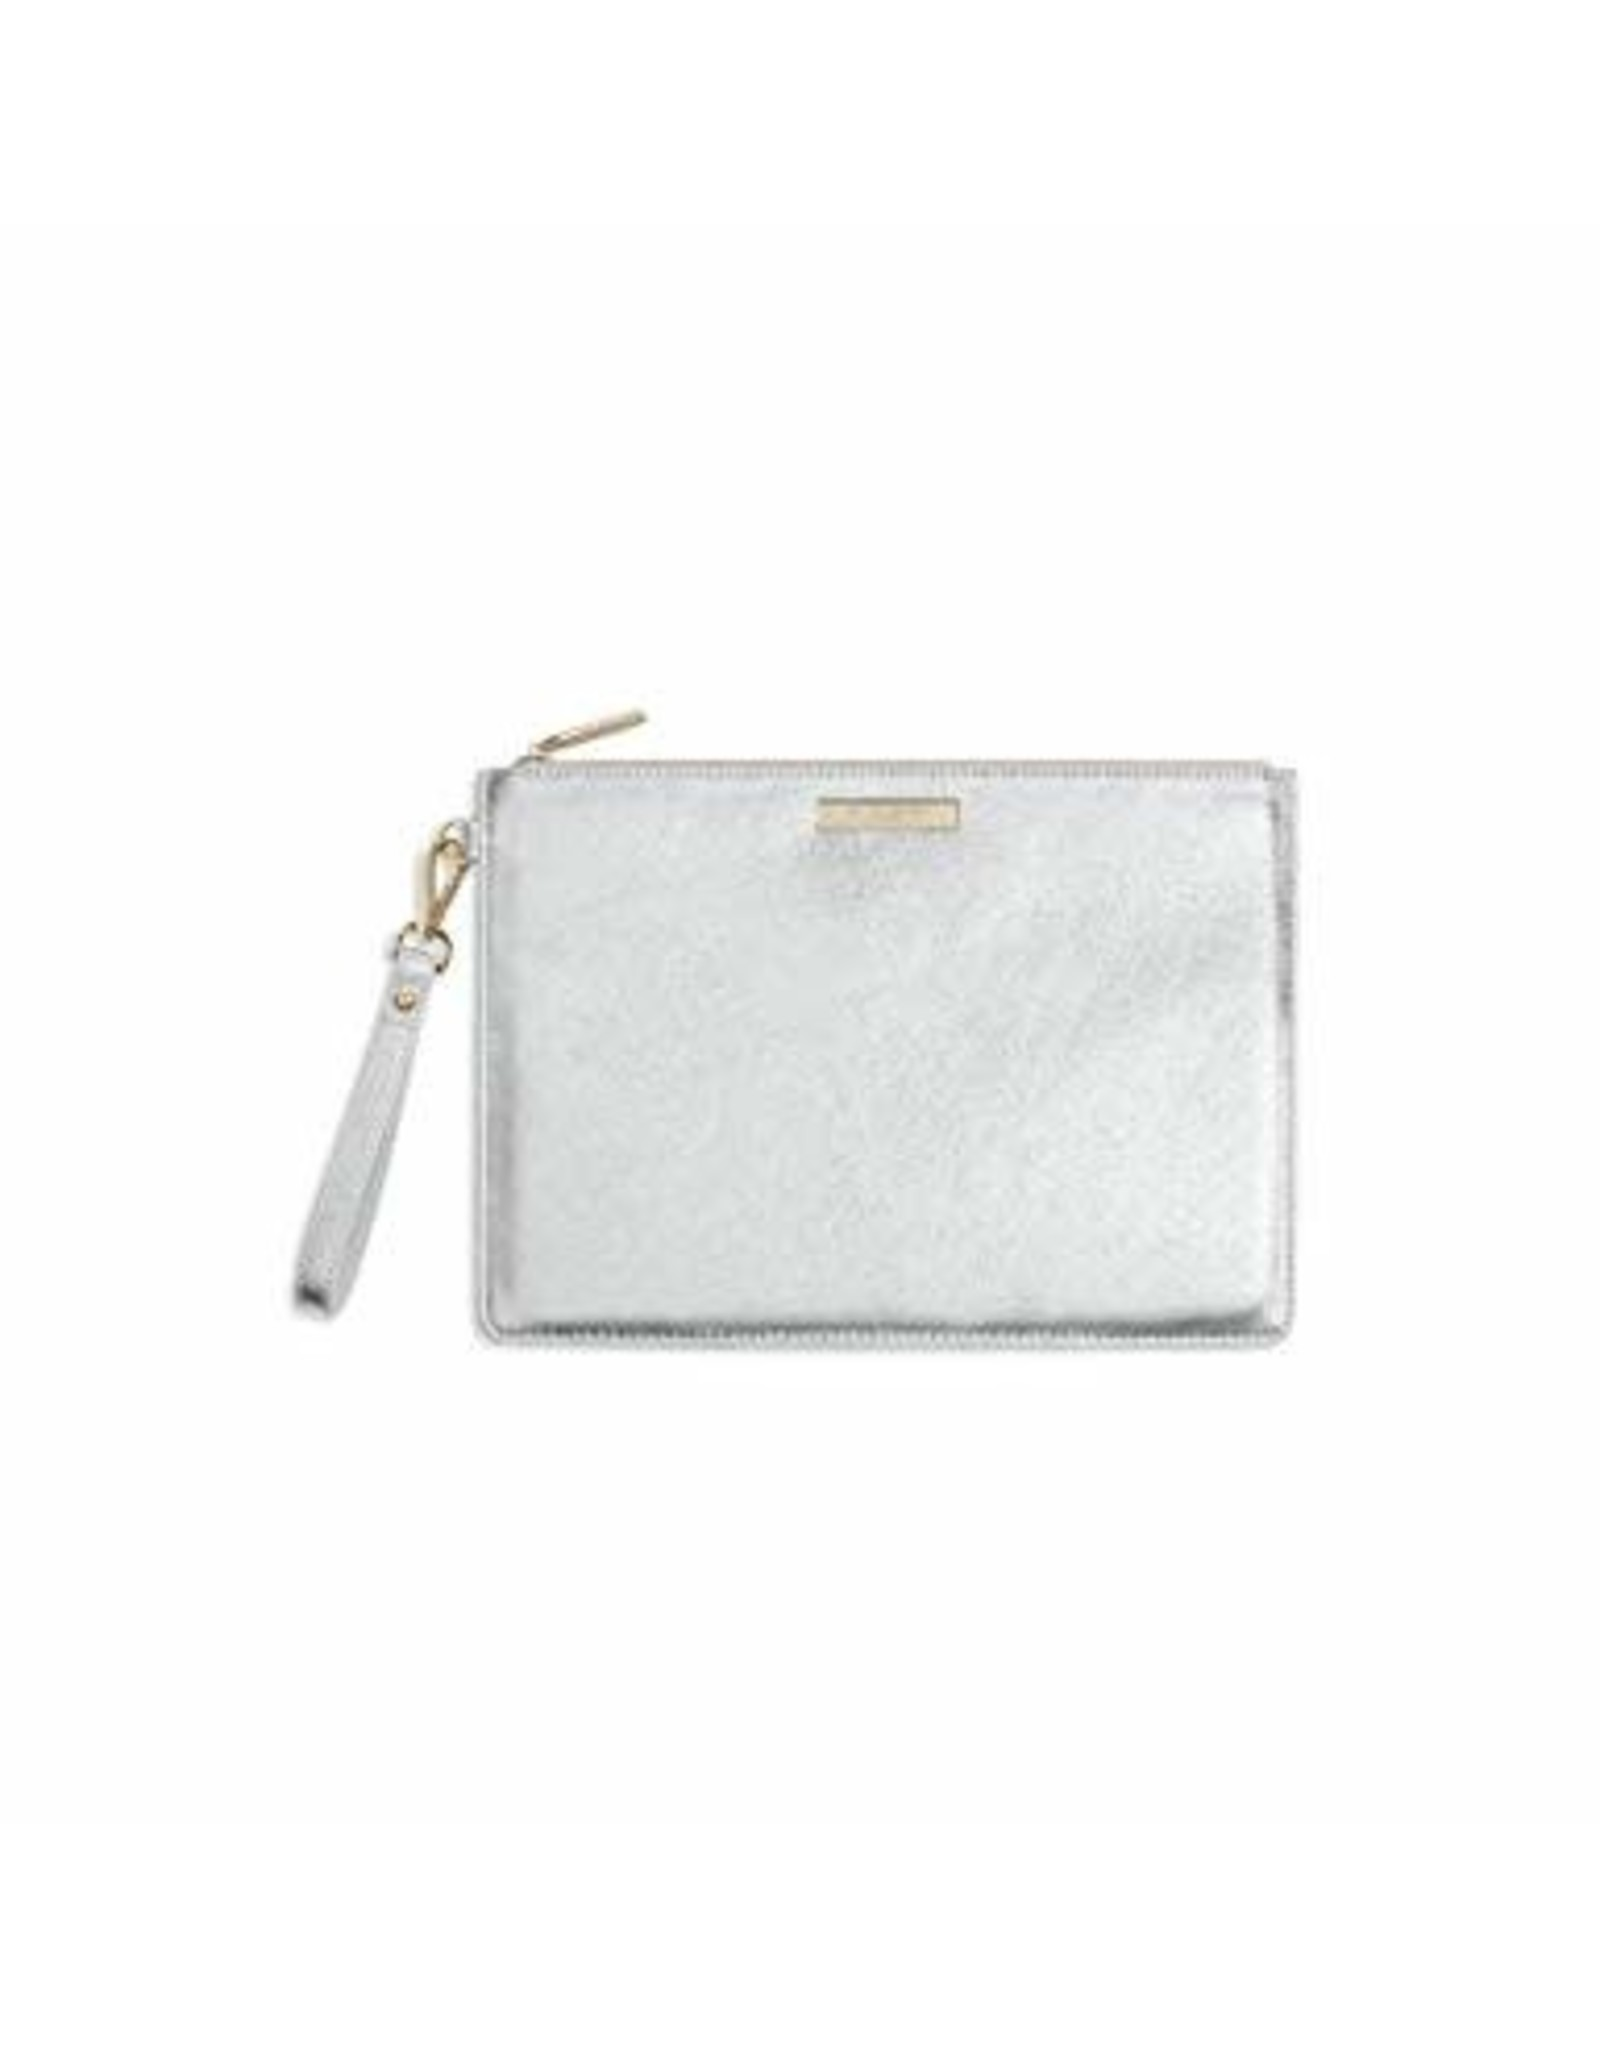 Metallic Luxe Clutch